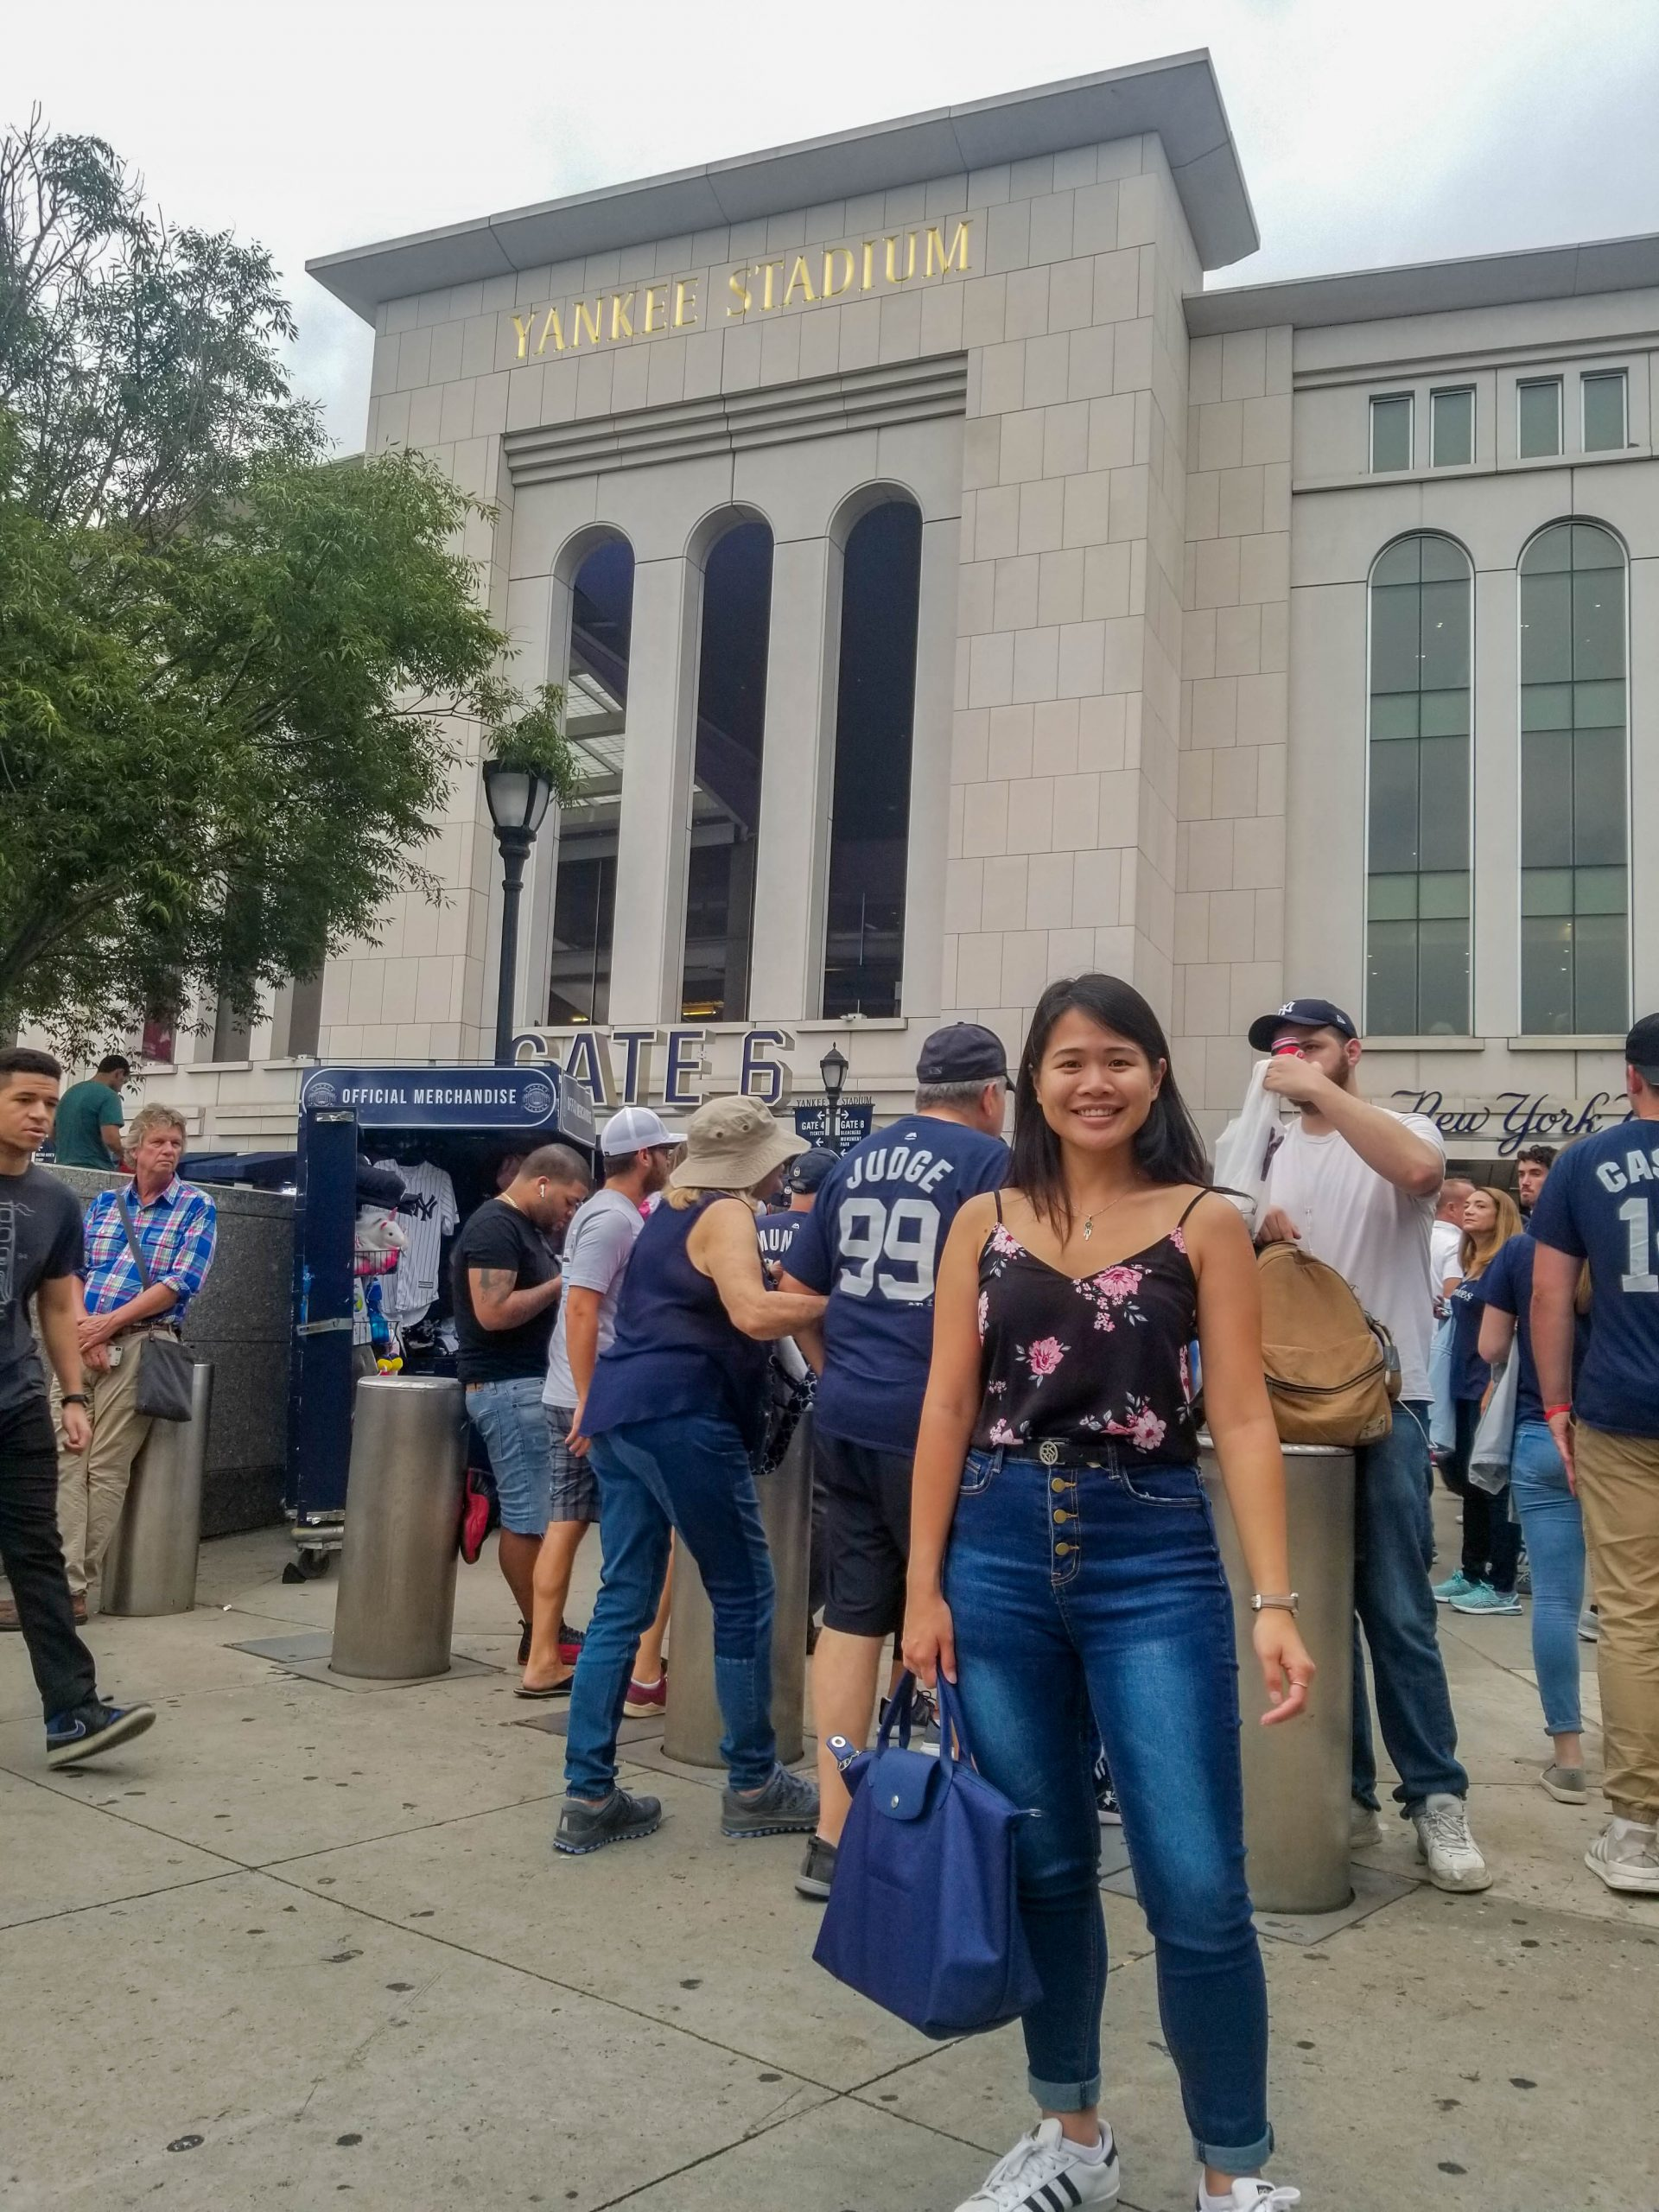 yankee stadium july 2019